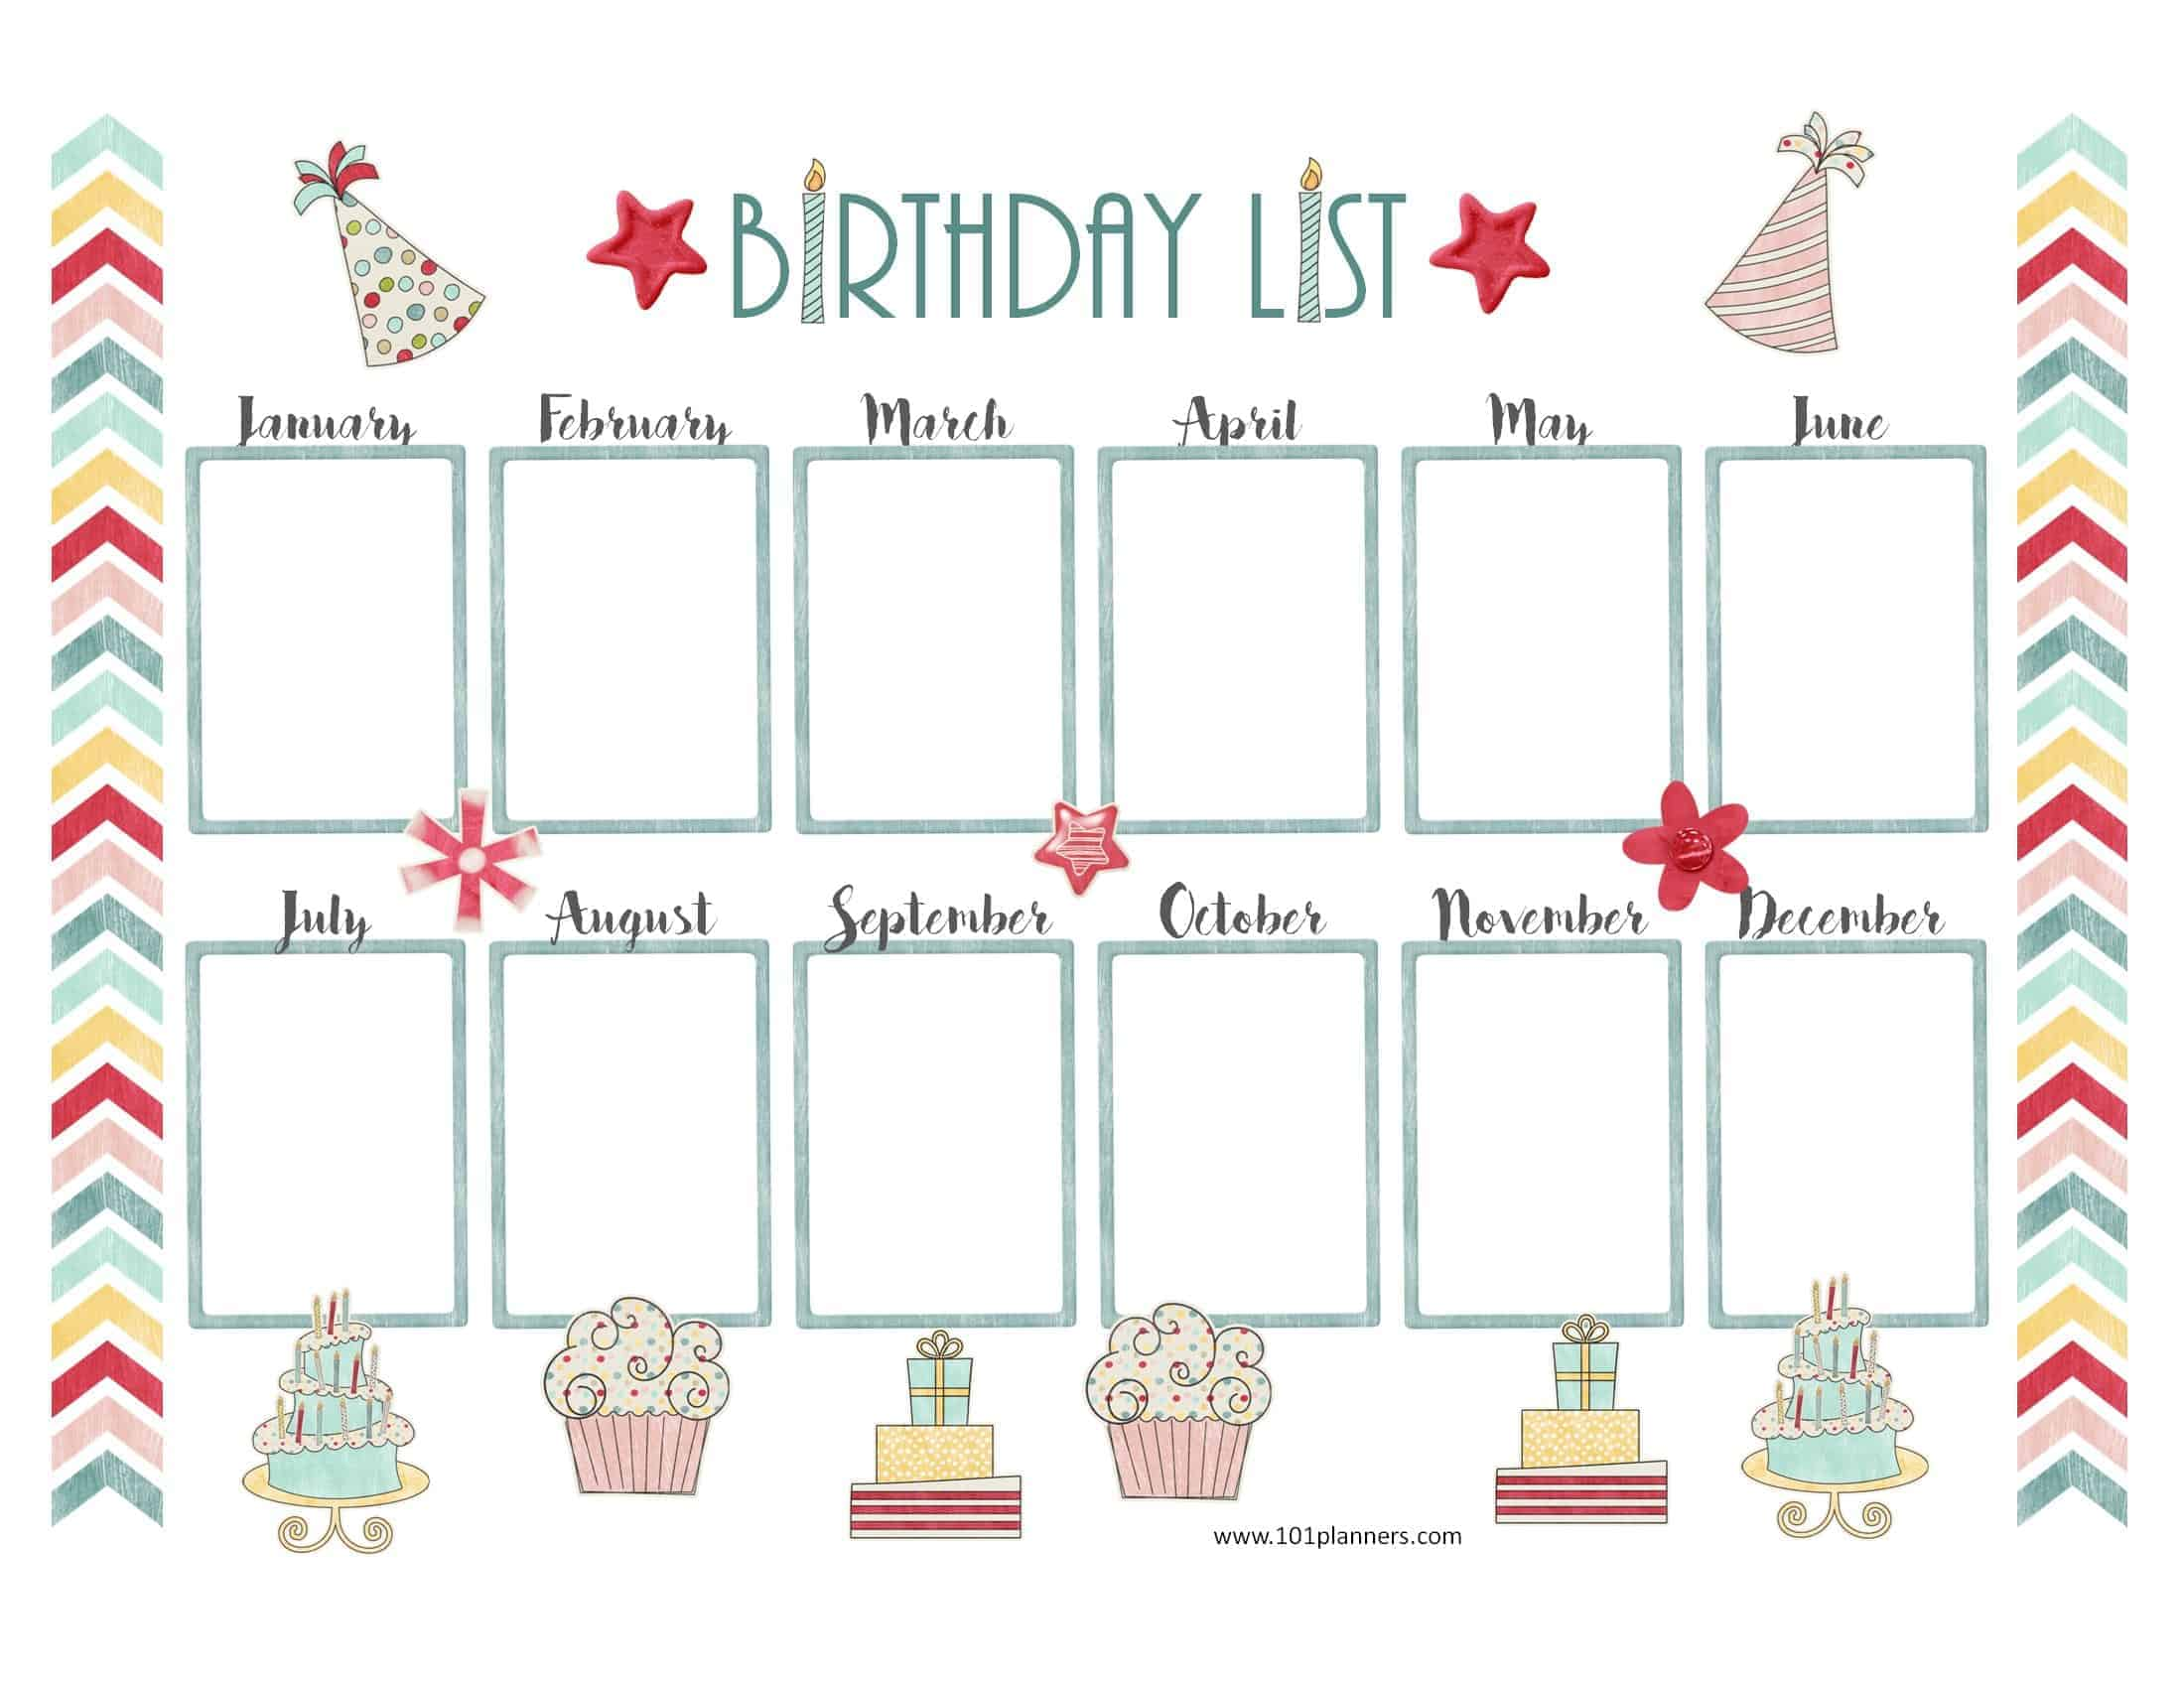 photo regarding Free Printable Perpetual Birthday Calendar Template named Totally free Birthday Calendar Printable Customizable Plenty of